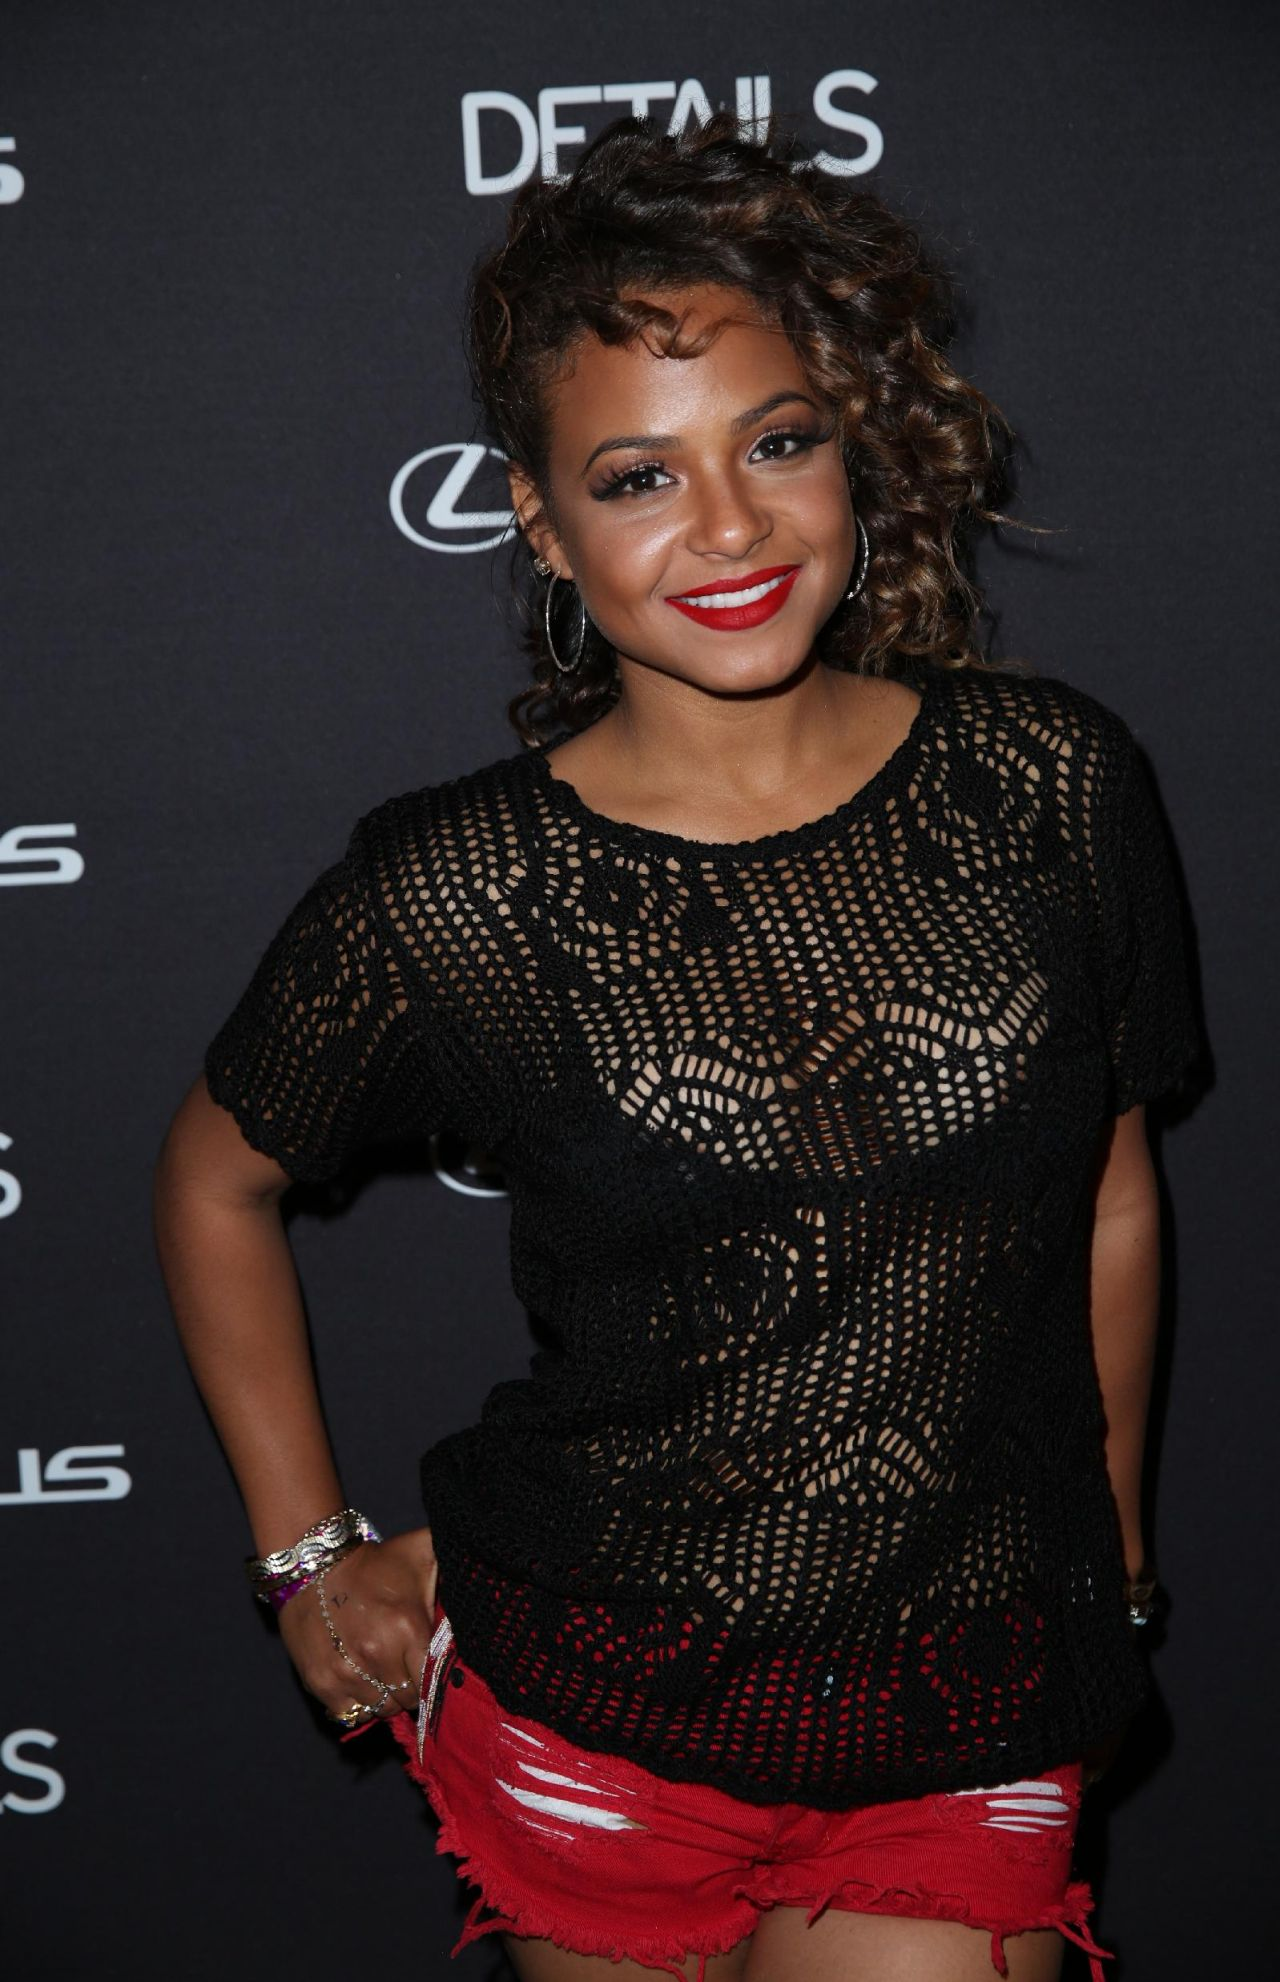 Christina Milian - Details Midnight party in Bermuda Dunes - April 2014